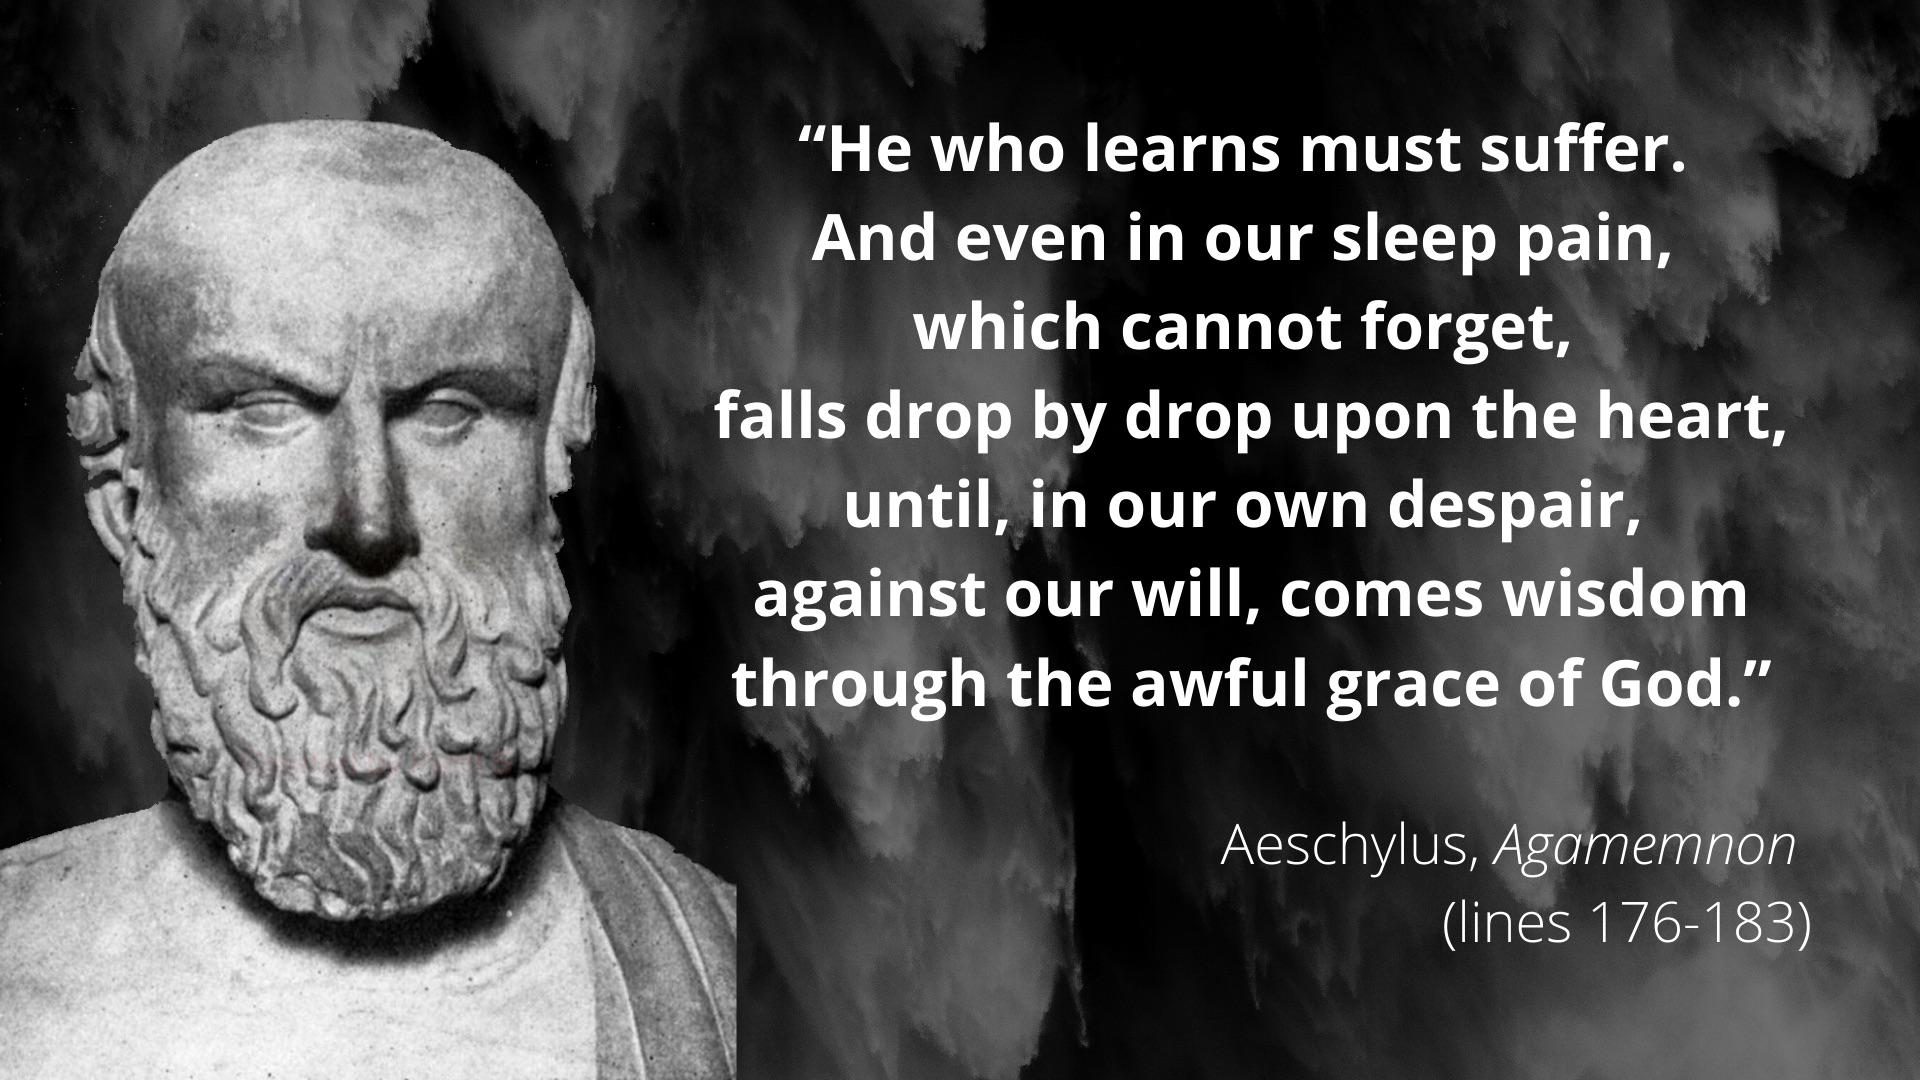 « He who learns must suffer. And even in our sleep pain that cannot forget falls drop by drop upon the heart, and in our own despair, against our will, comes wisdom to us by the awful grace of God »-Aeschylus [1920-1080]